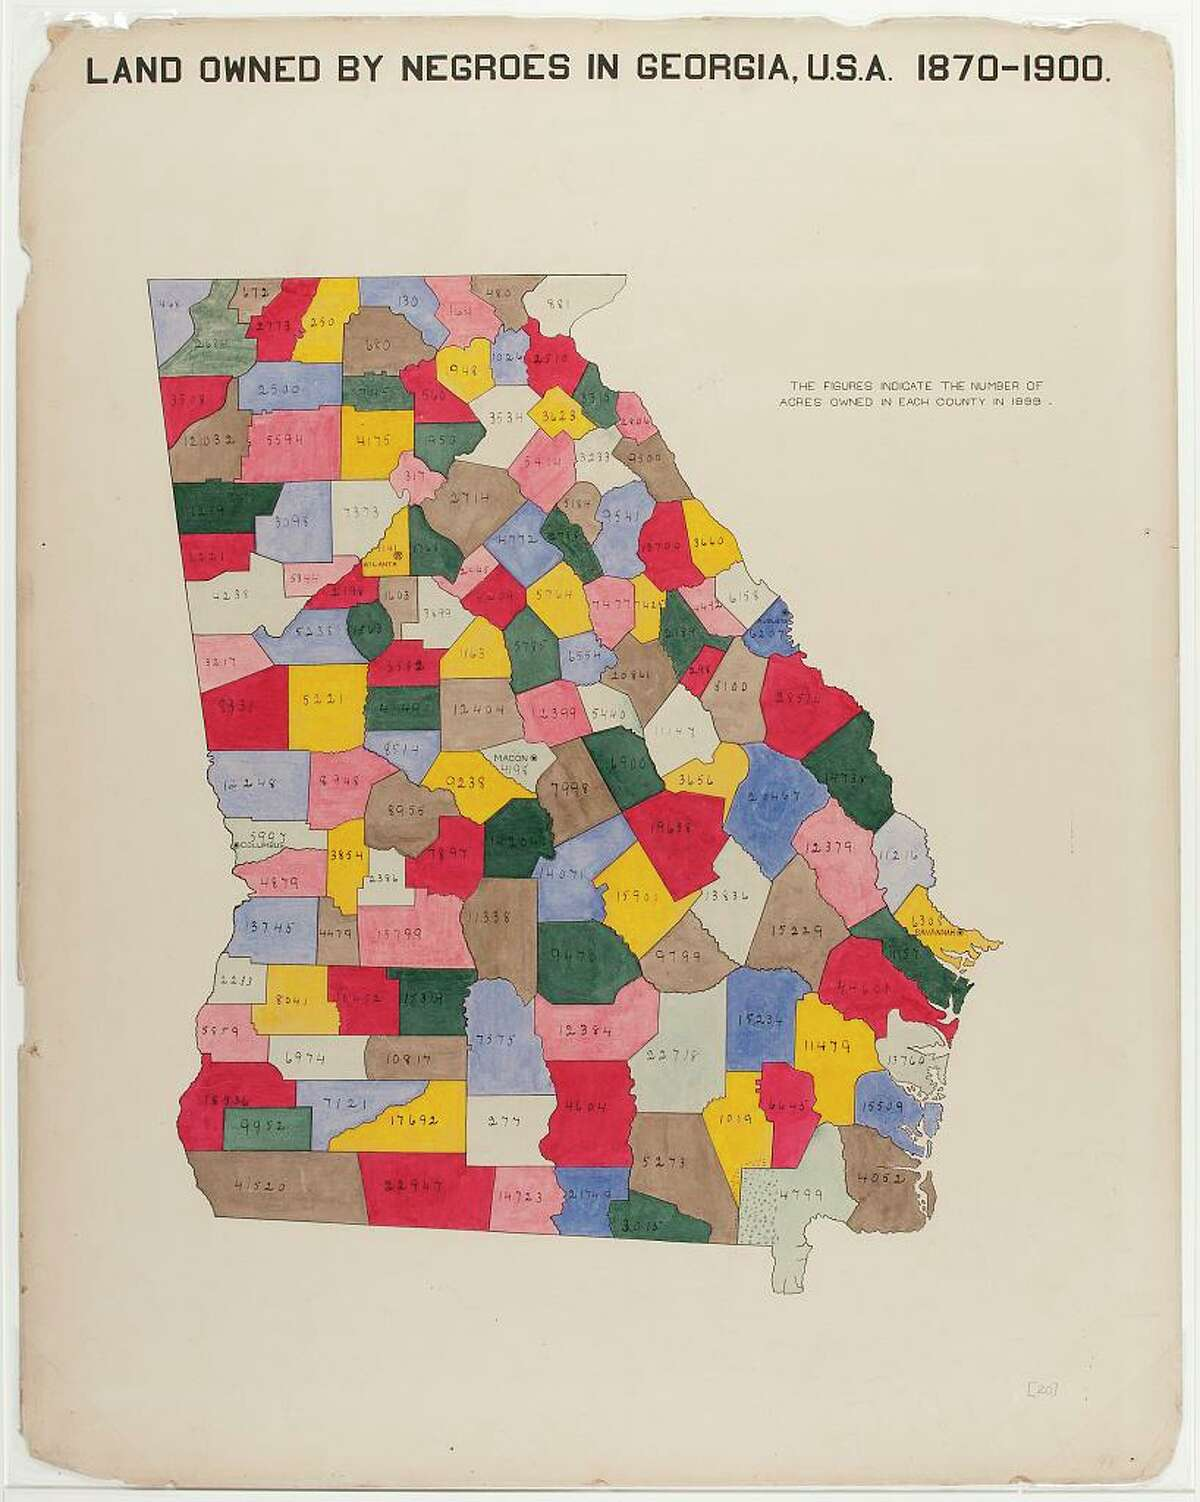 Artspace in New Haven will debut a new exhibit this weekend with artwork from W.E.B. Du Bois.